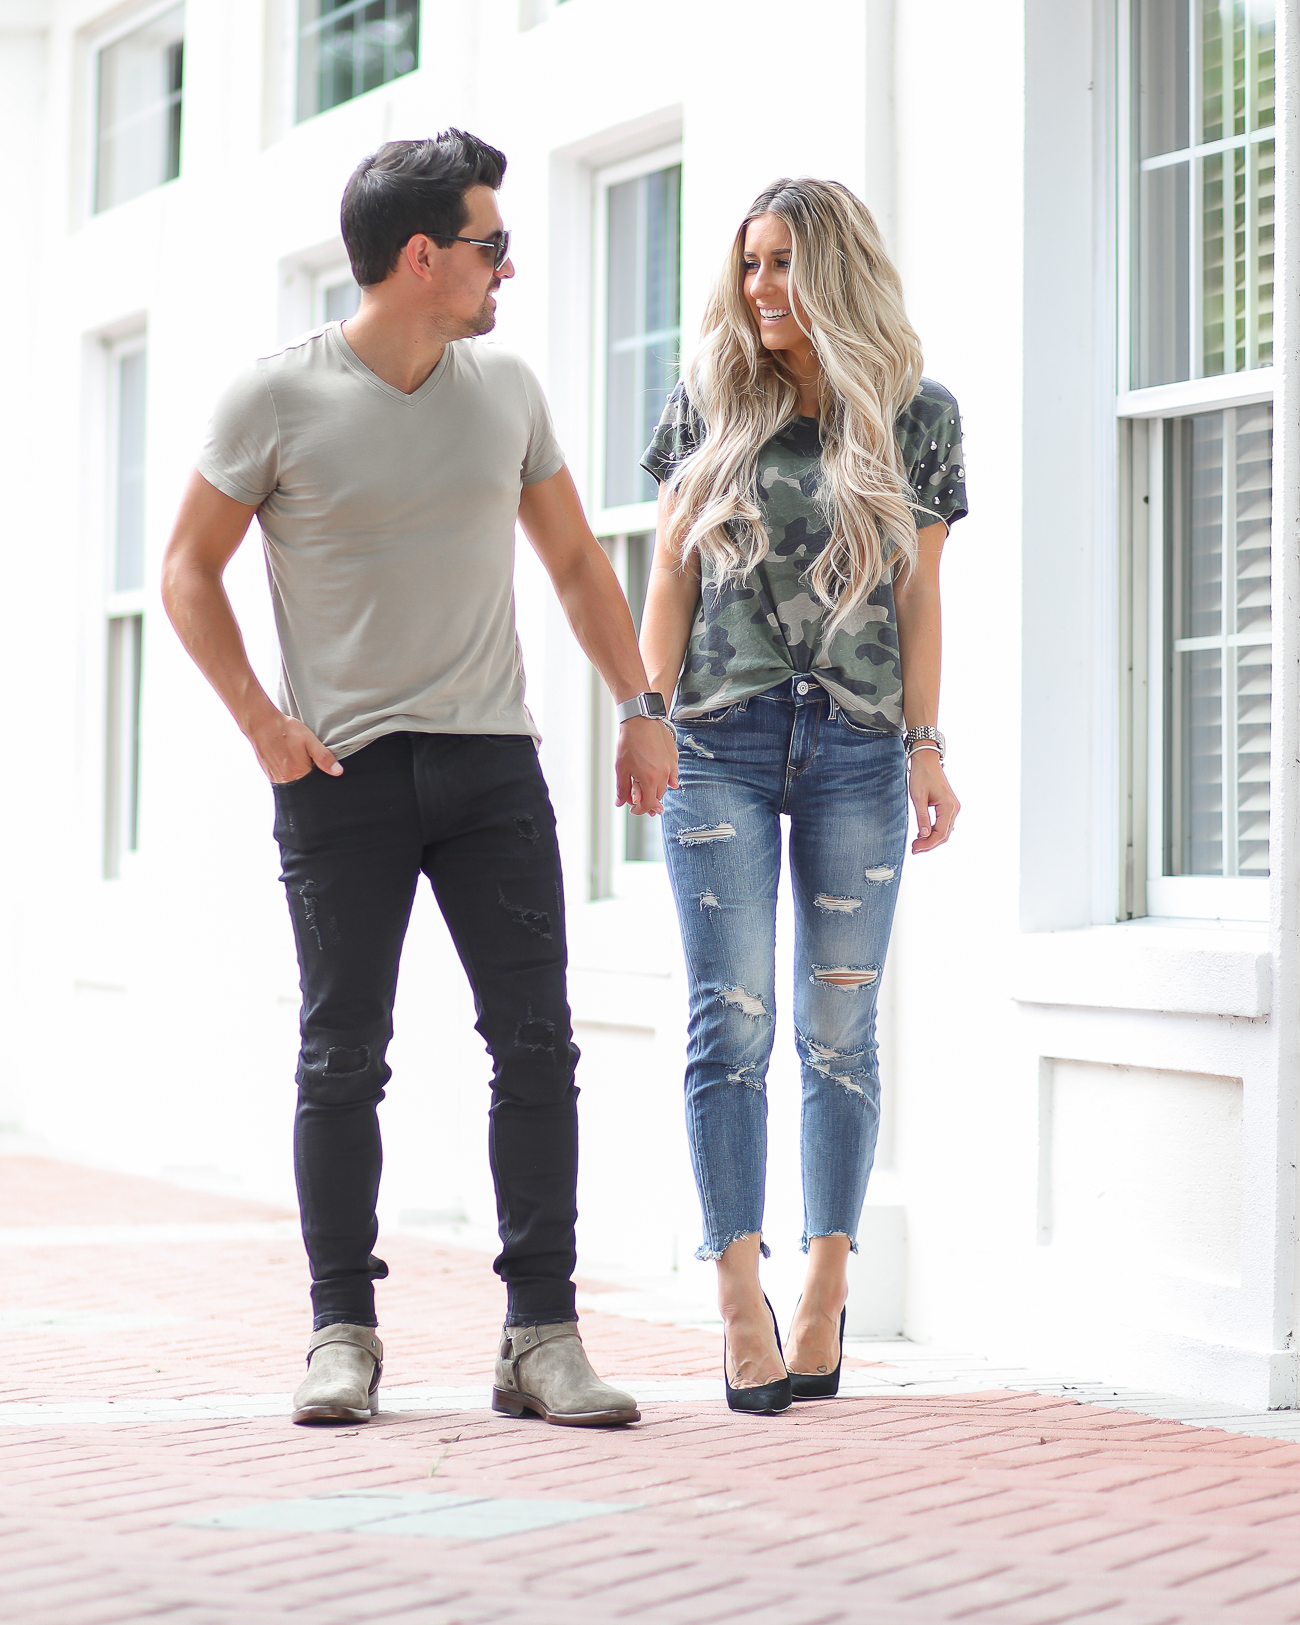 Express Distressed Jeans Casual Couples Style Camo Tee Mens Style-1